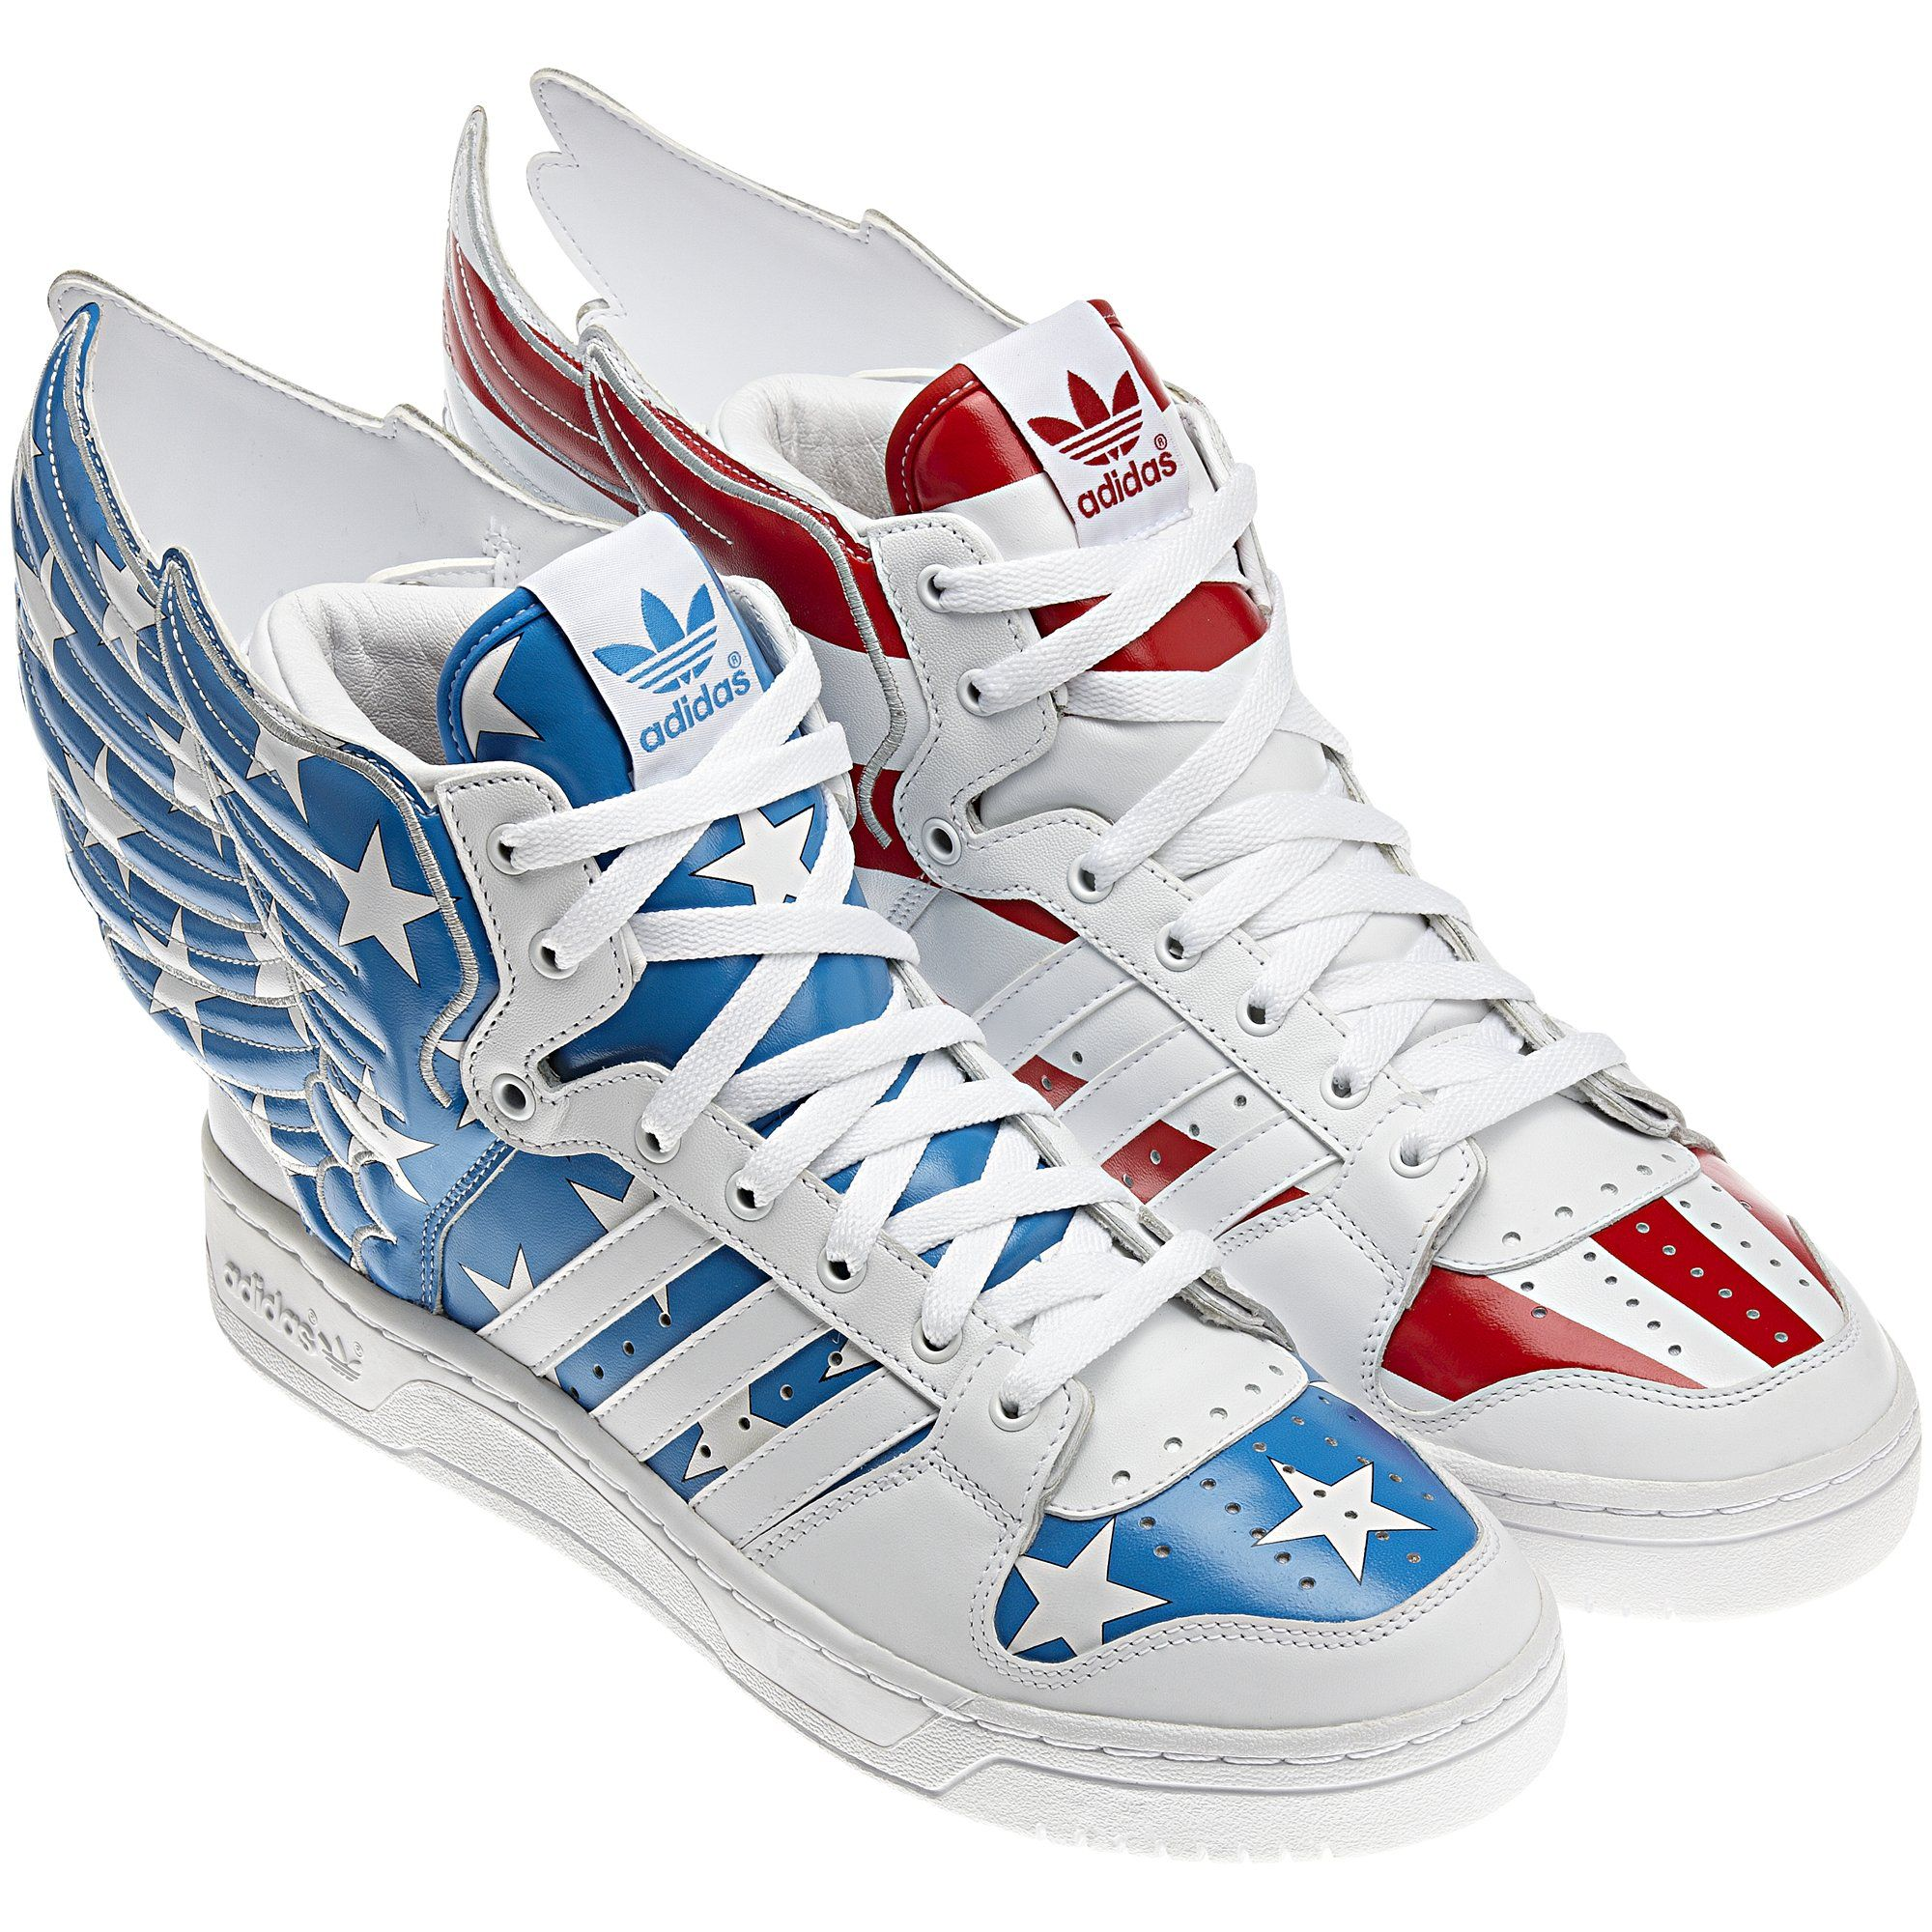 meet 3ab75 9936e Adidas Jeremy Scott Wings - Capt. America shoes